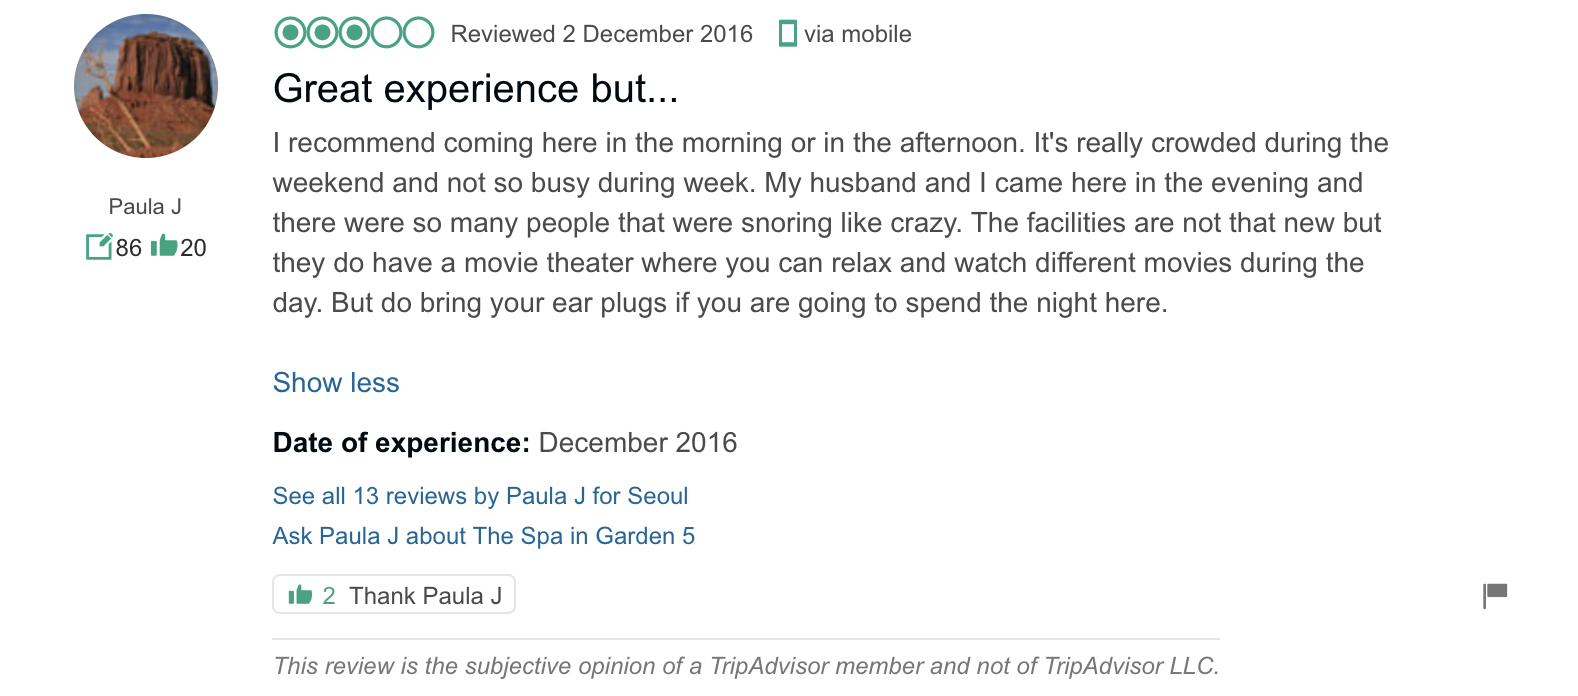 'I recommend coming here in the morning or…afternoon. It's really crowded during the weekend… The facilities are not that new but they do have a theater where you can relax and watch...movies…' - The Spa in Garden 5: Reviews from TripAdvisor